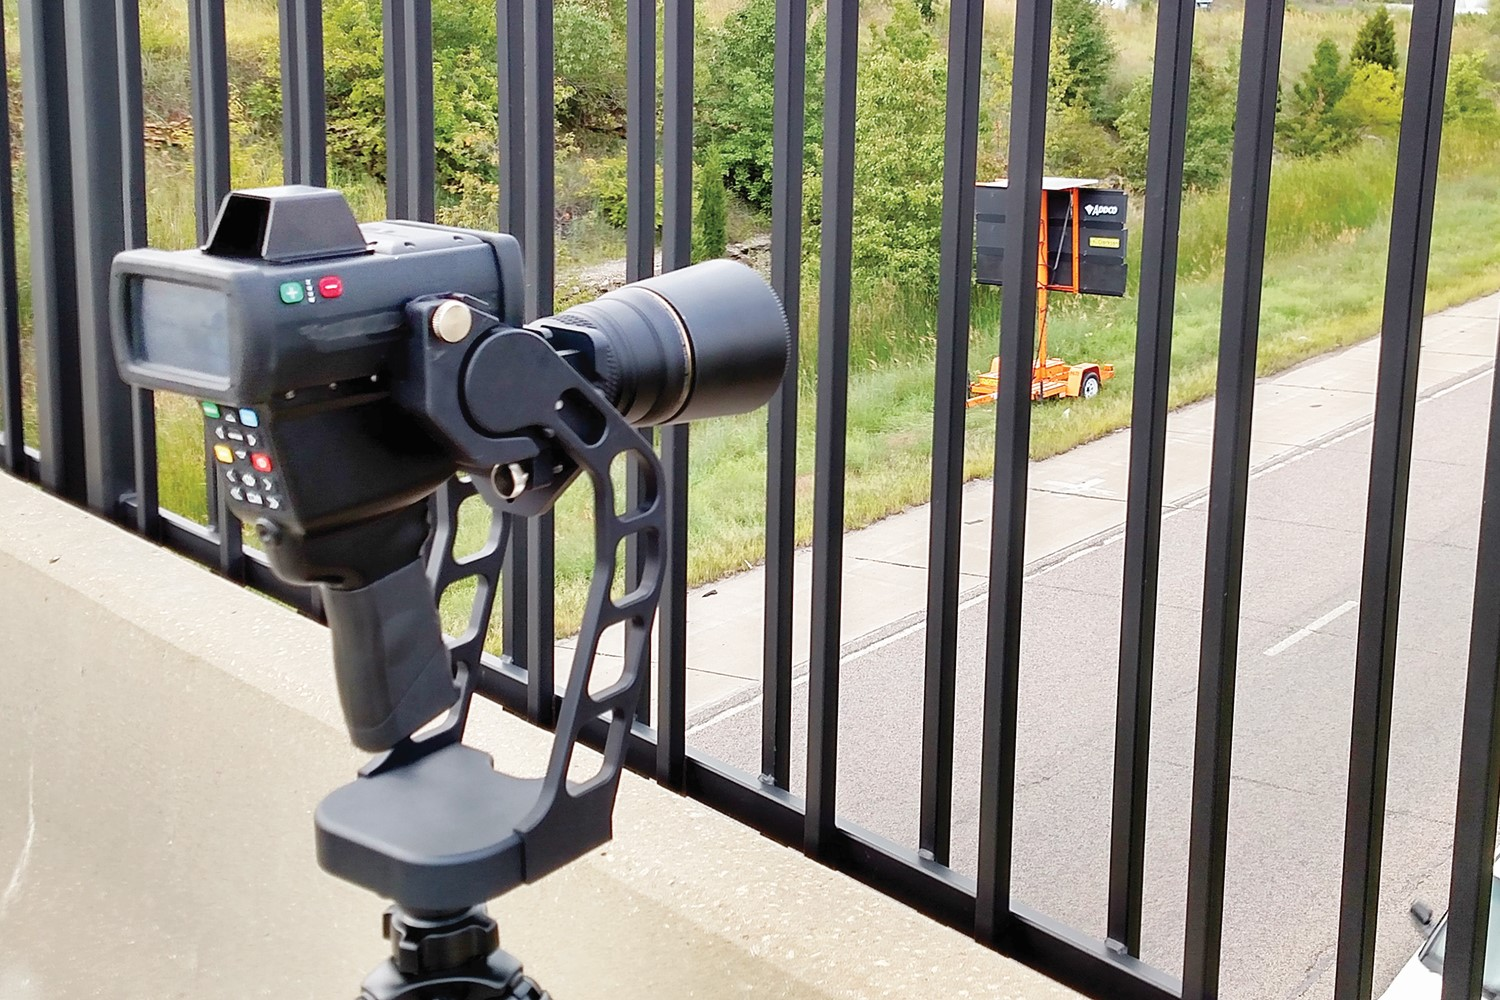 Kustom Signals Inc. is now shipping the LaserCam 4 LR for long range target tracking. The...